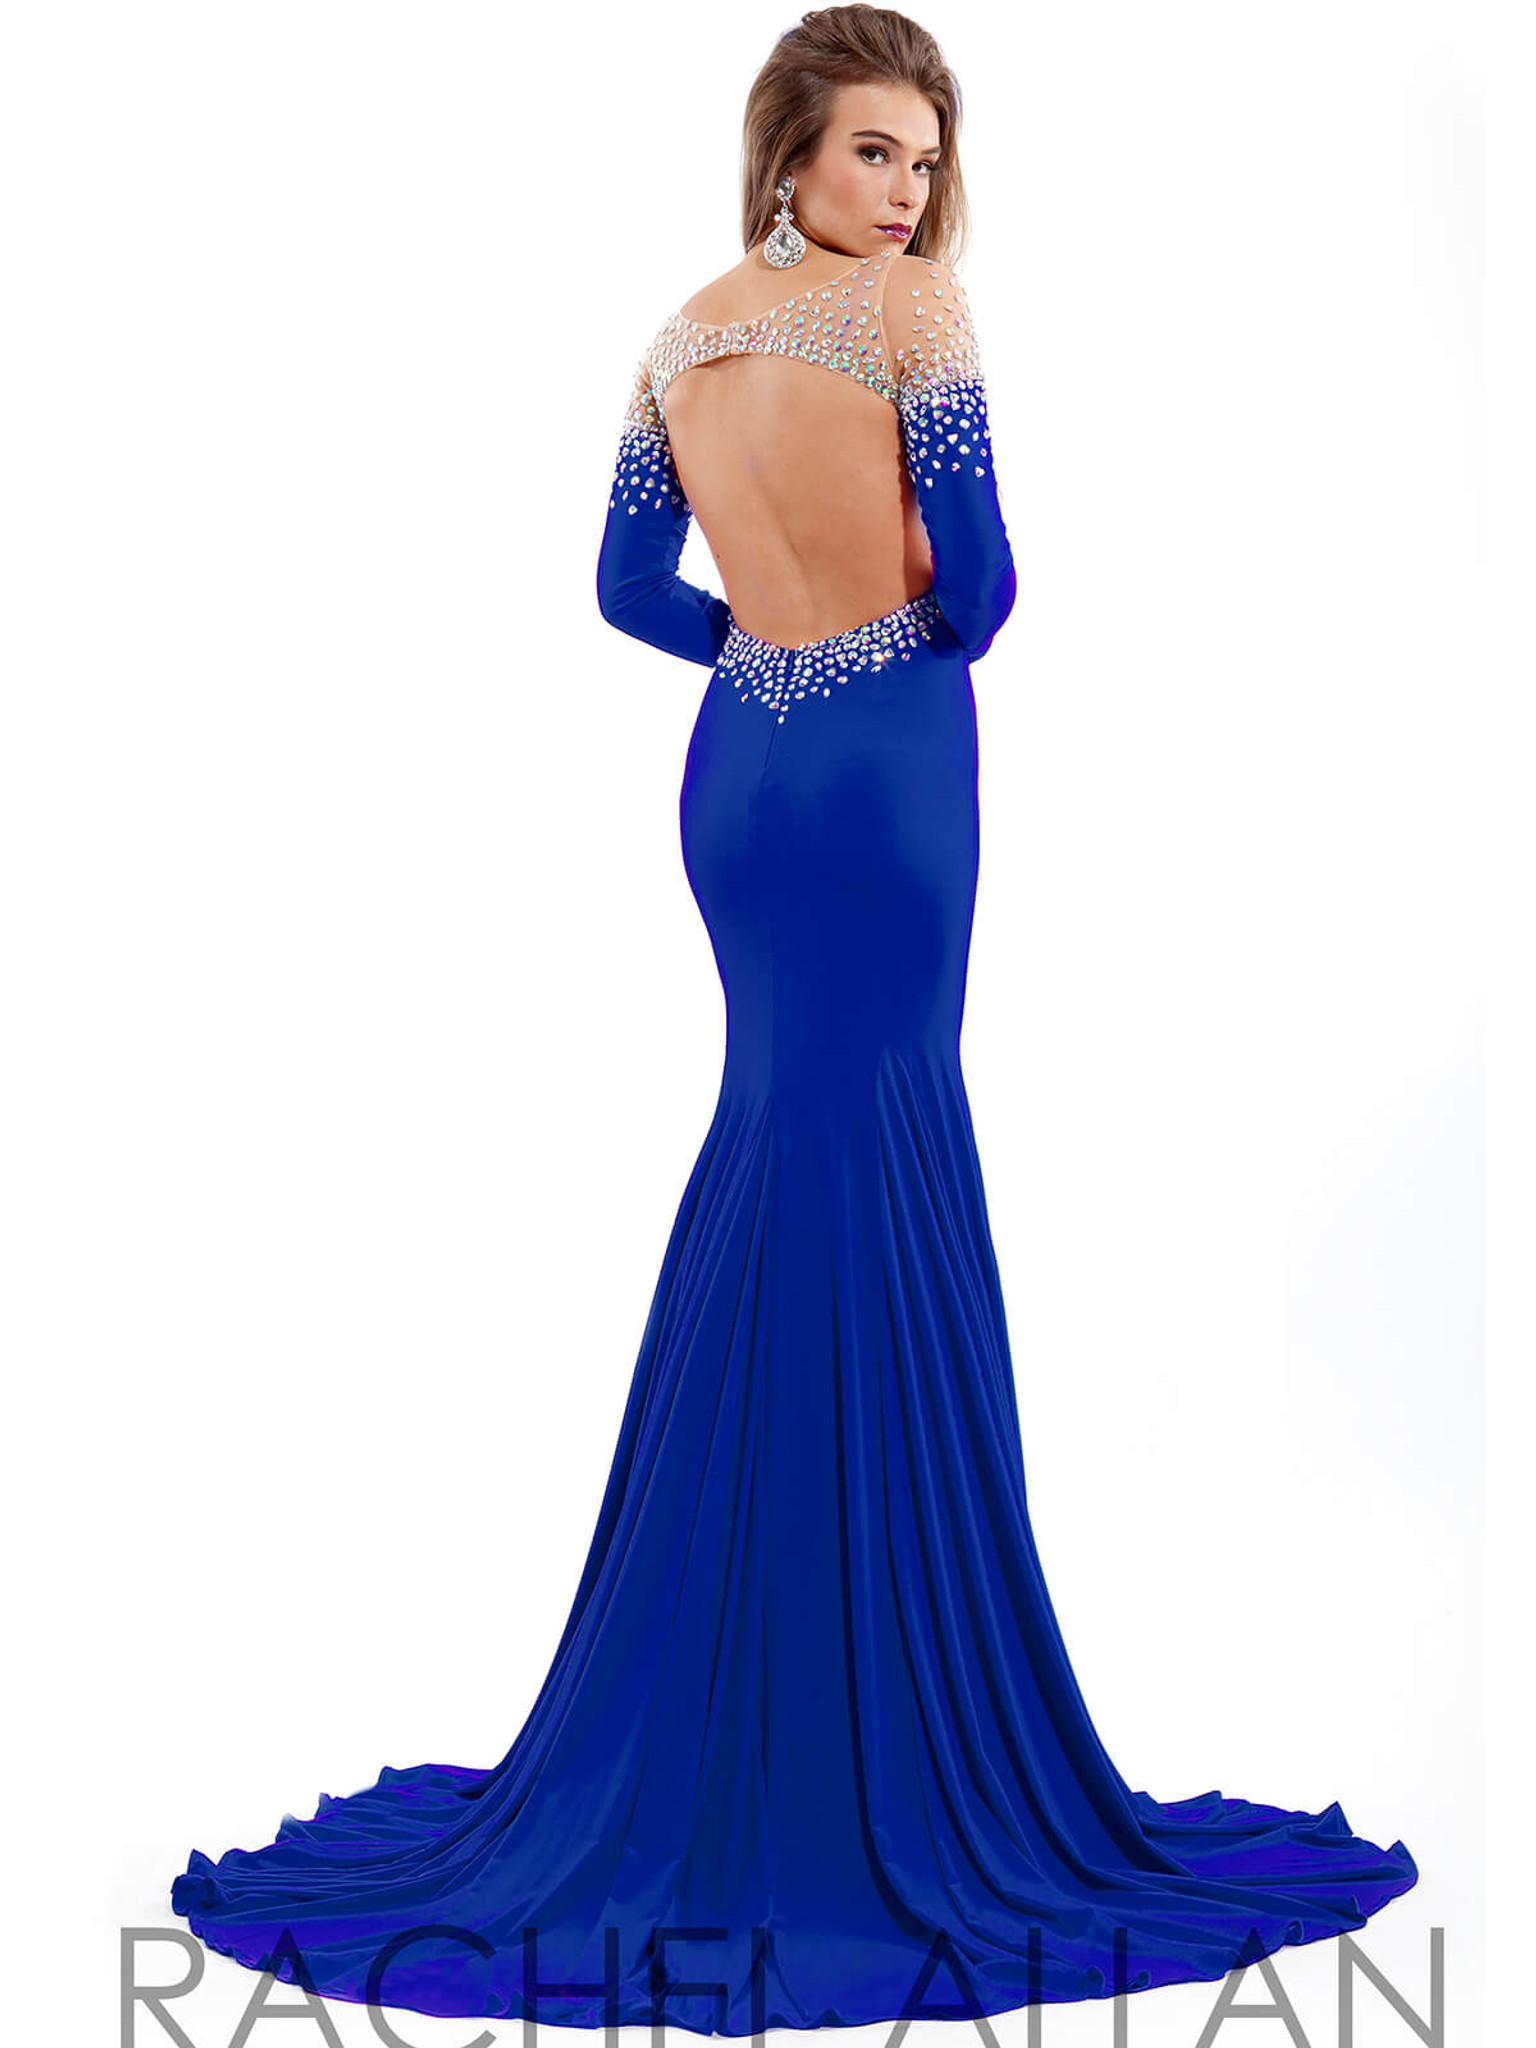 Rachel Allan Prima Donna Pageant Dress 5716